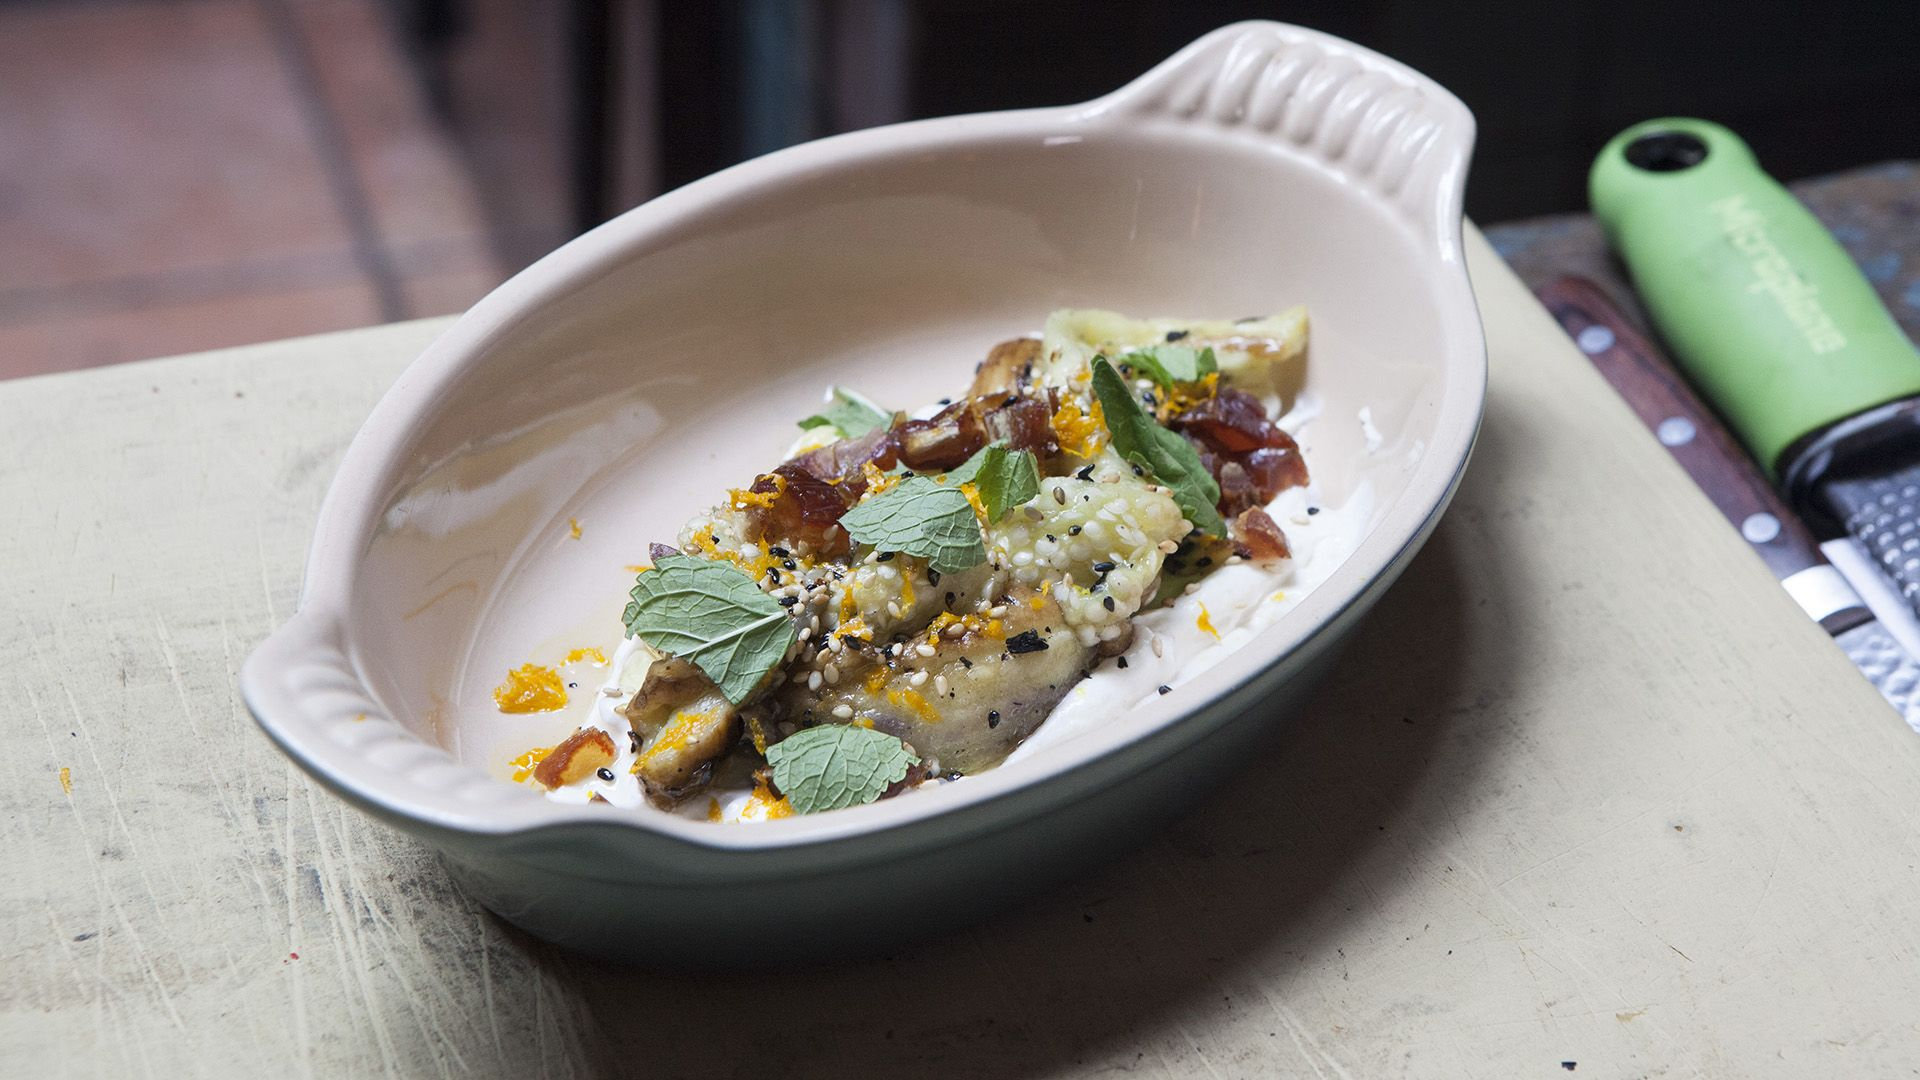 Spanish-Style Smoked Eggplant You Can Make at Home